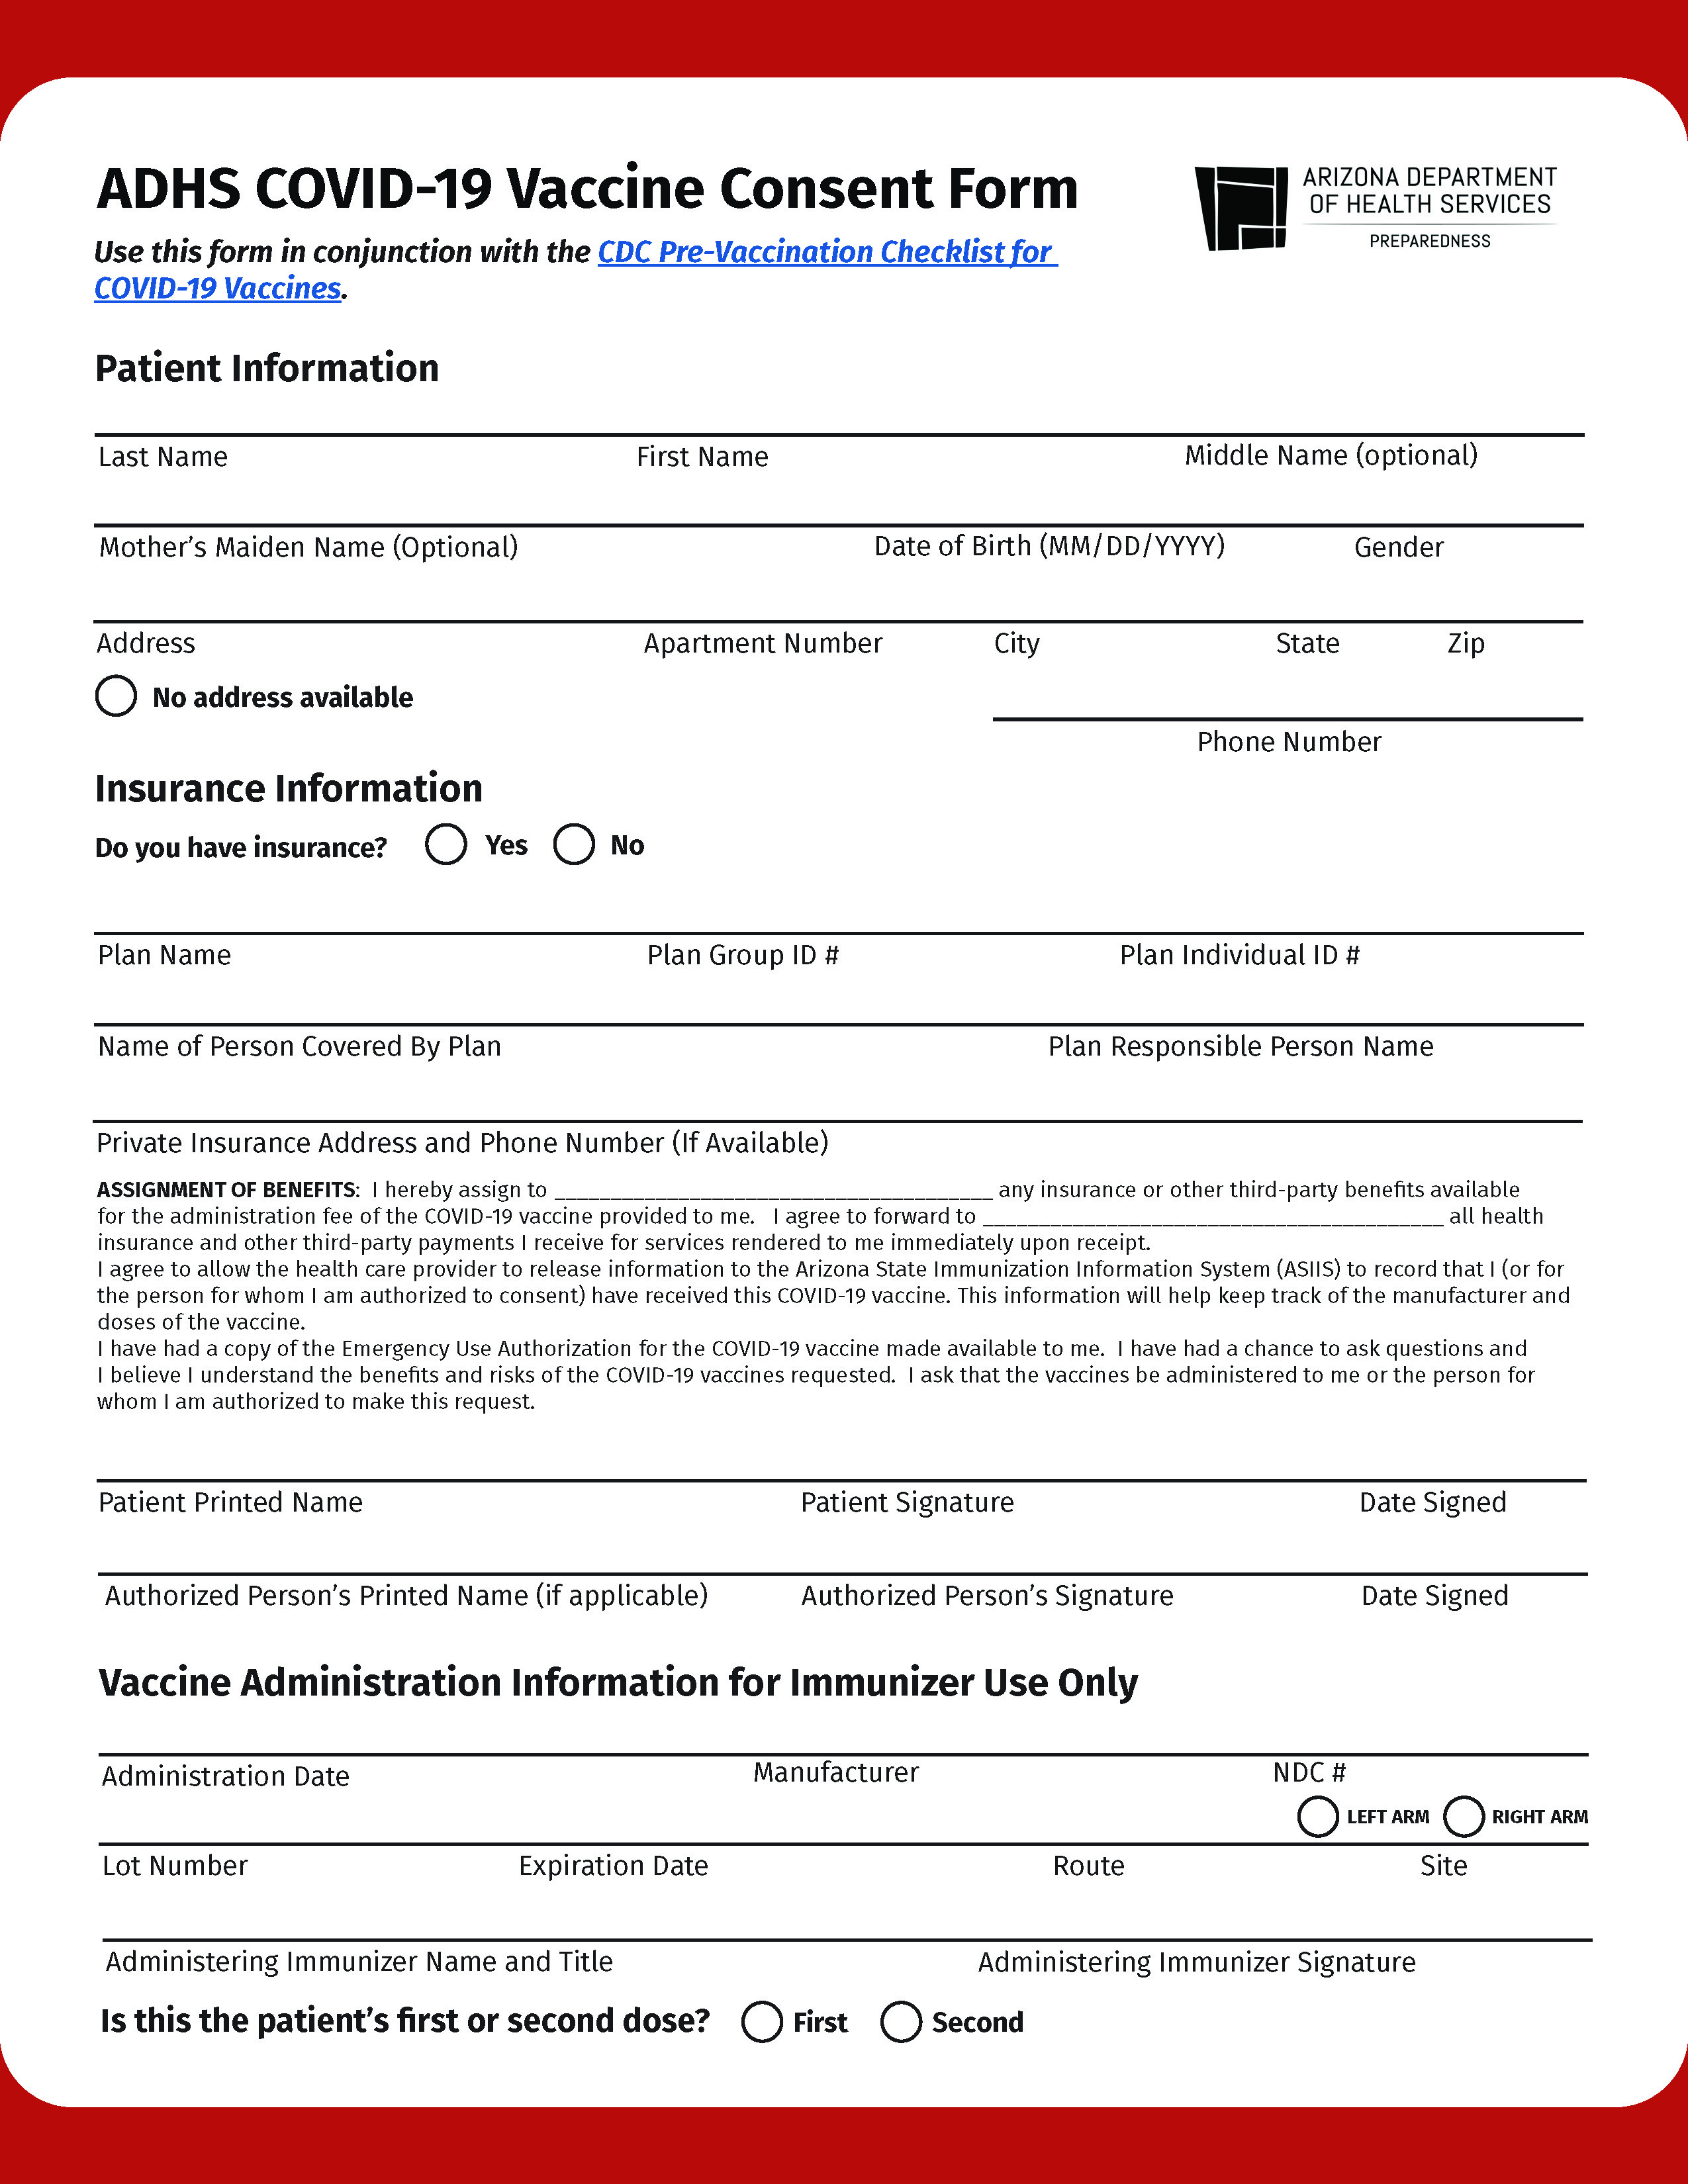 ADHS COVID-19 Vaccine Consent Form